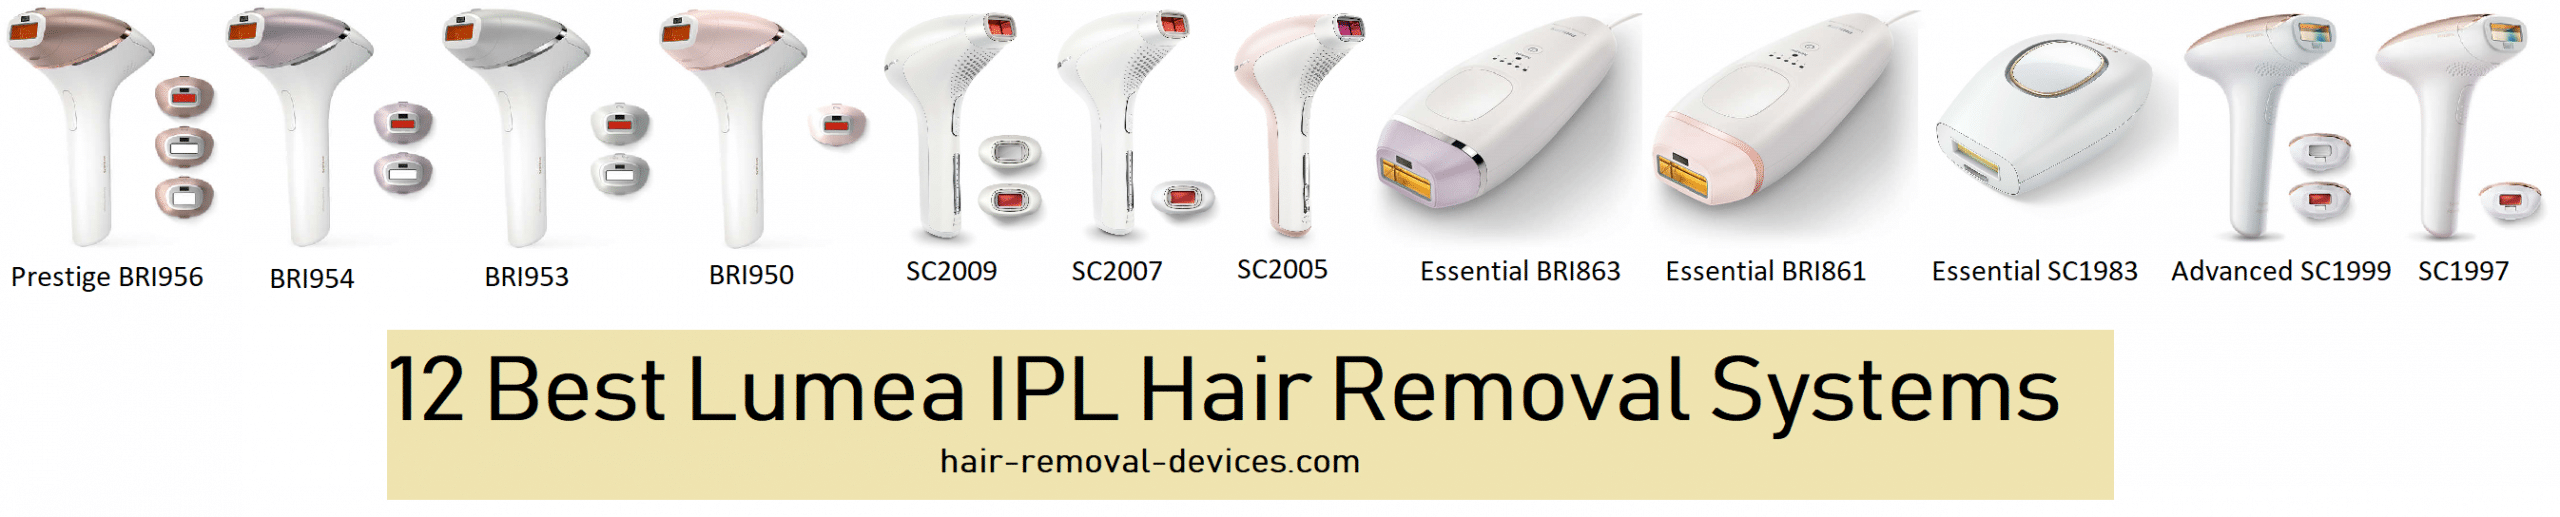 Philips Lumea Ipl Hair Removal Systems 12 Best Devices